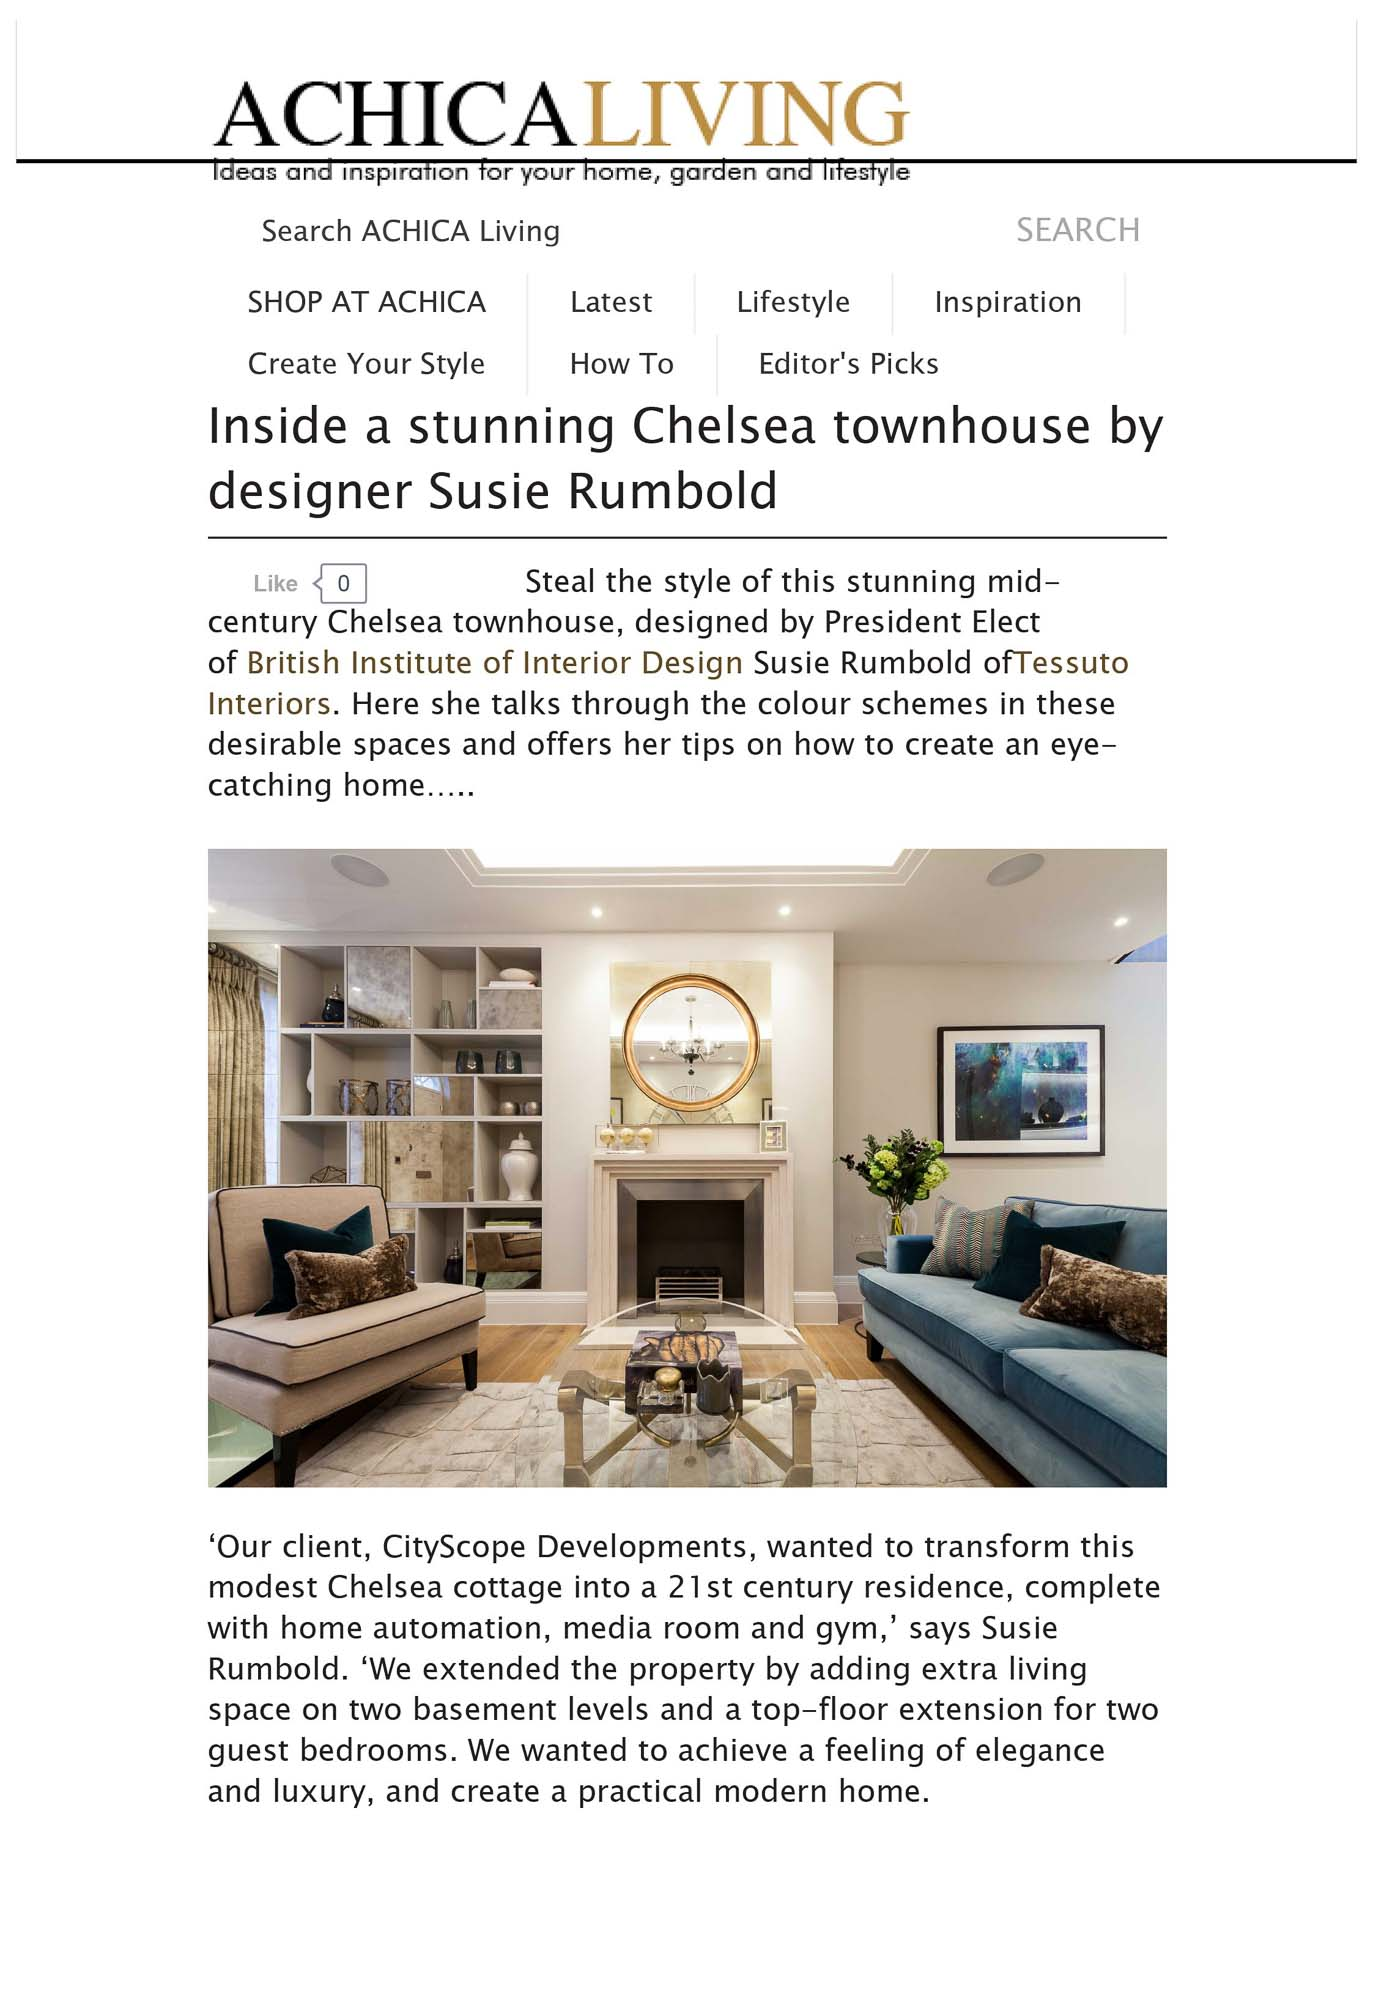 achica-living-chelsea-townhouse-by-designer-susie-rumbold-01-03-1-2